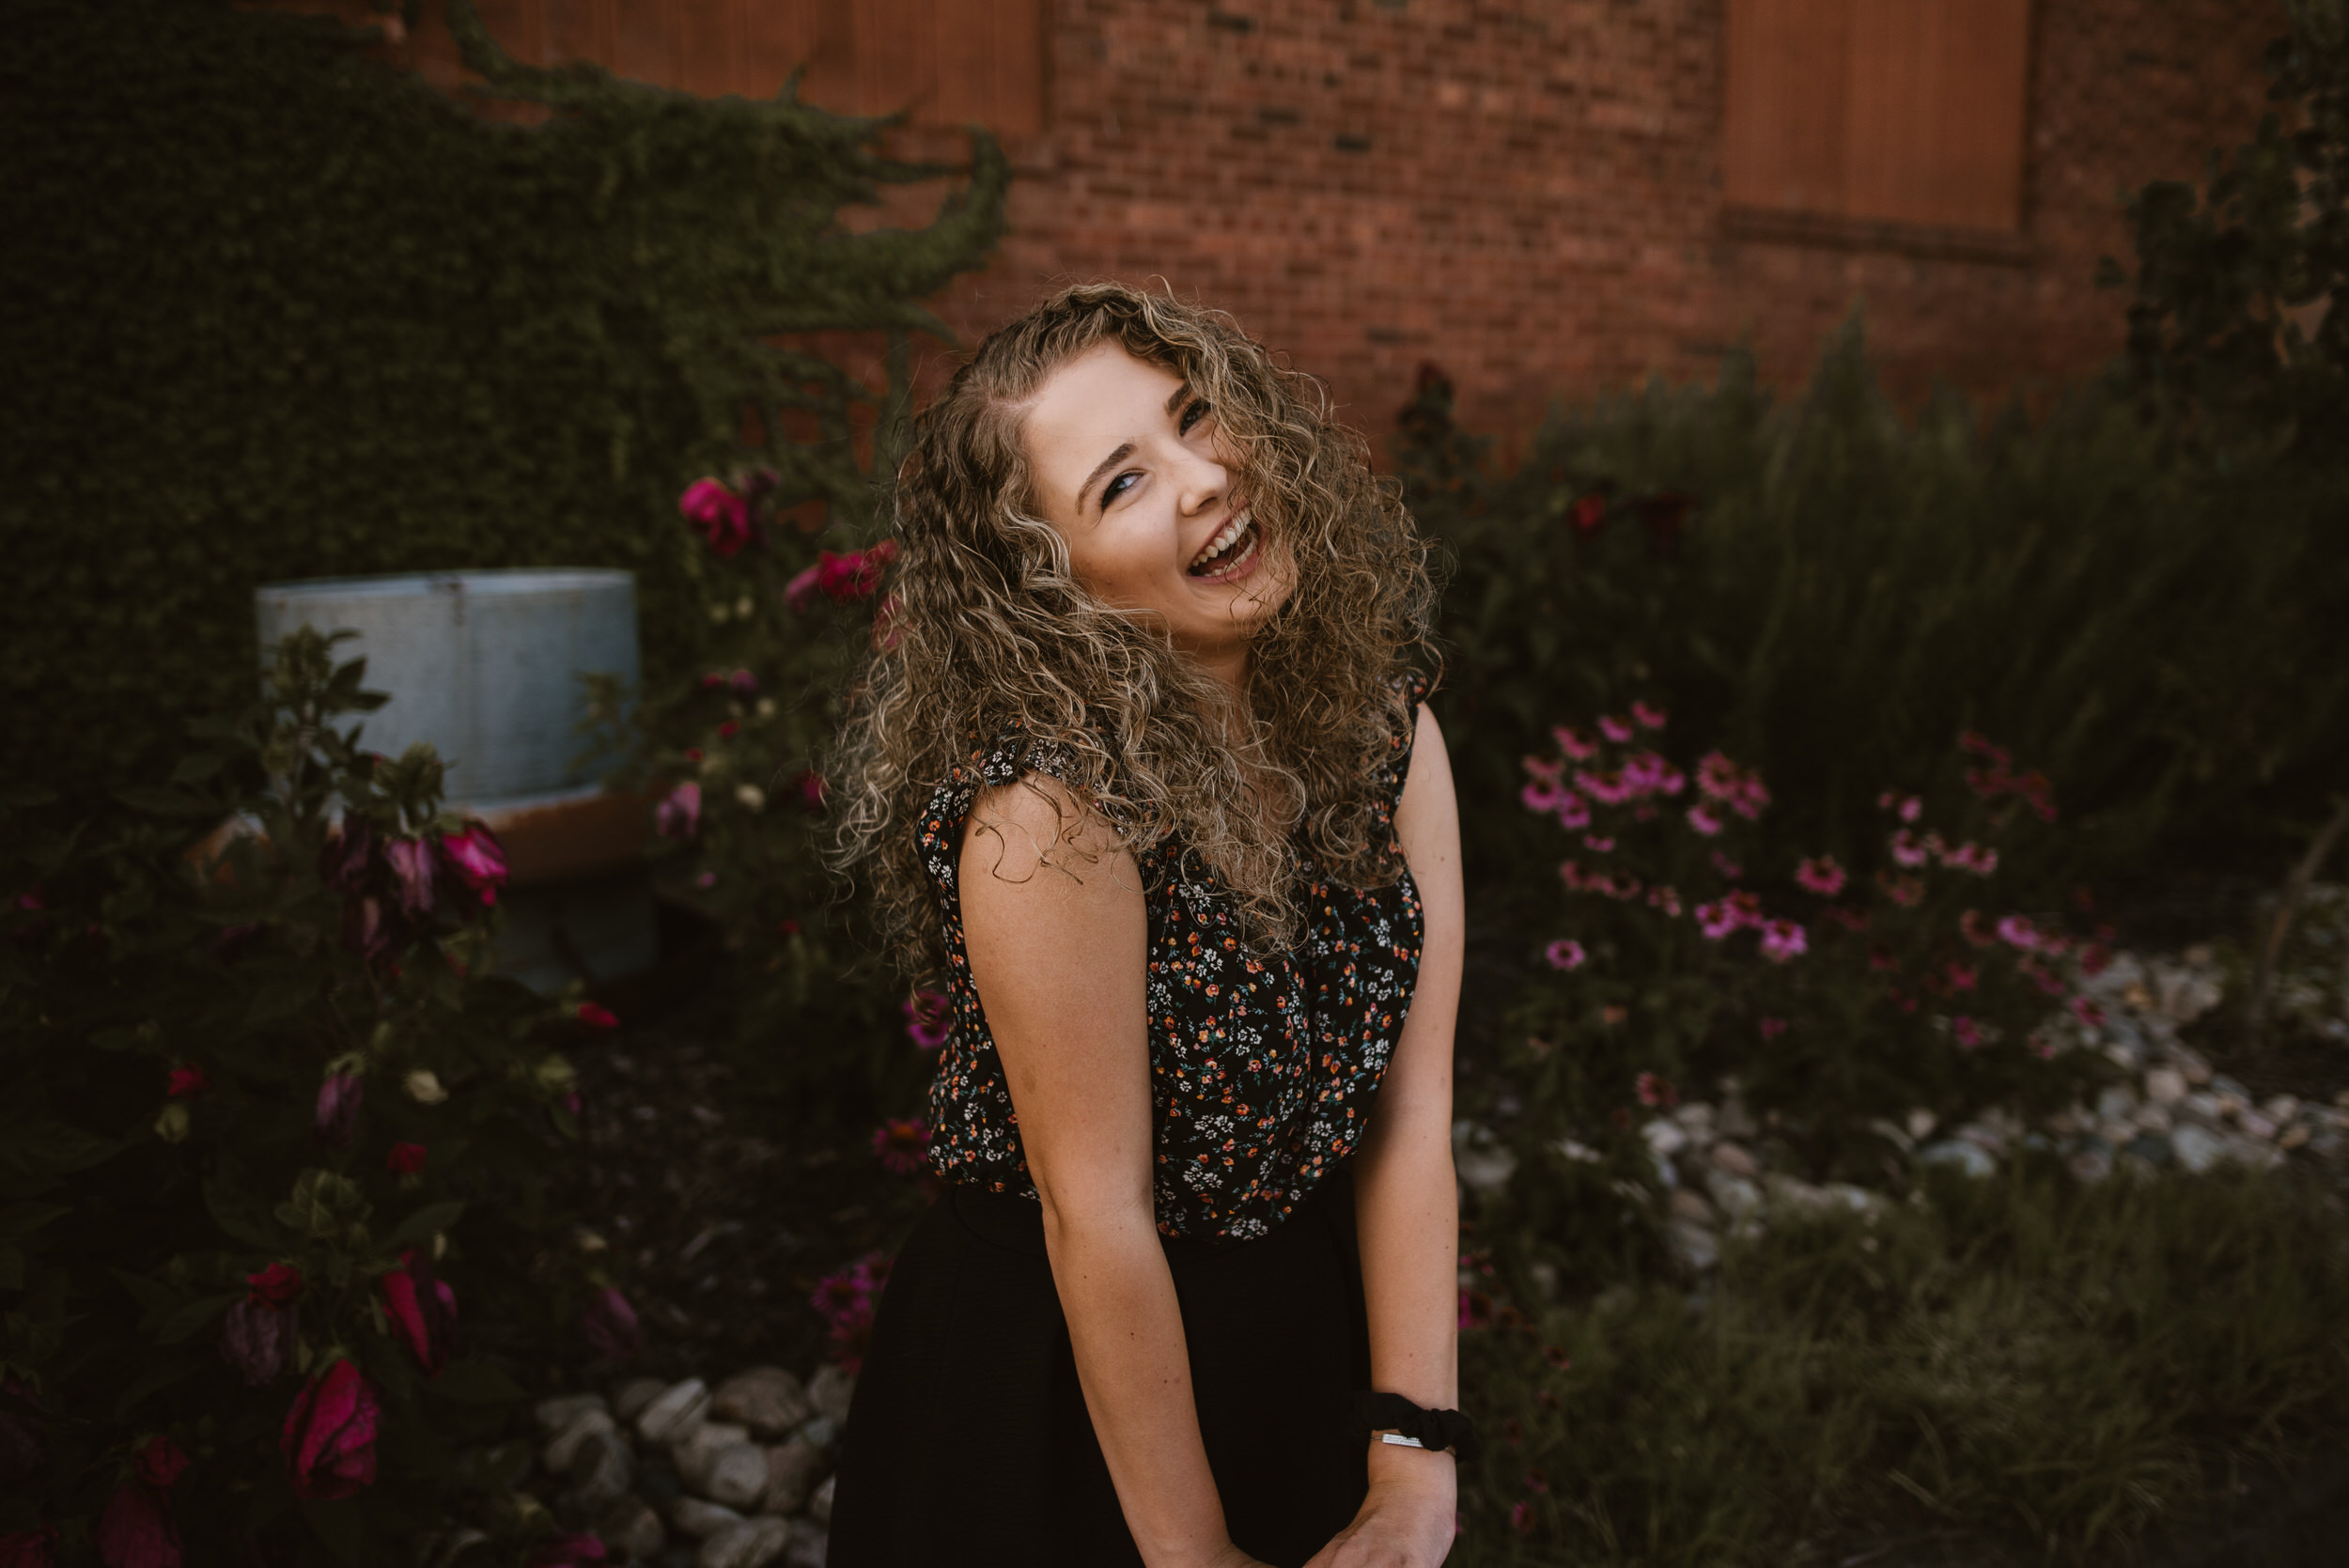 Kaylie-Sirek-Photography-York-High-School-Senior-010.jpg